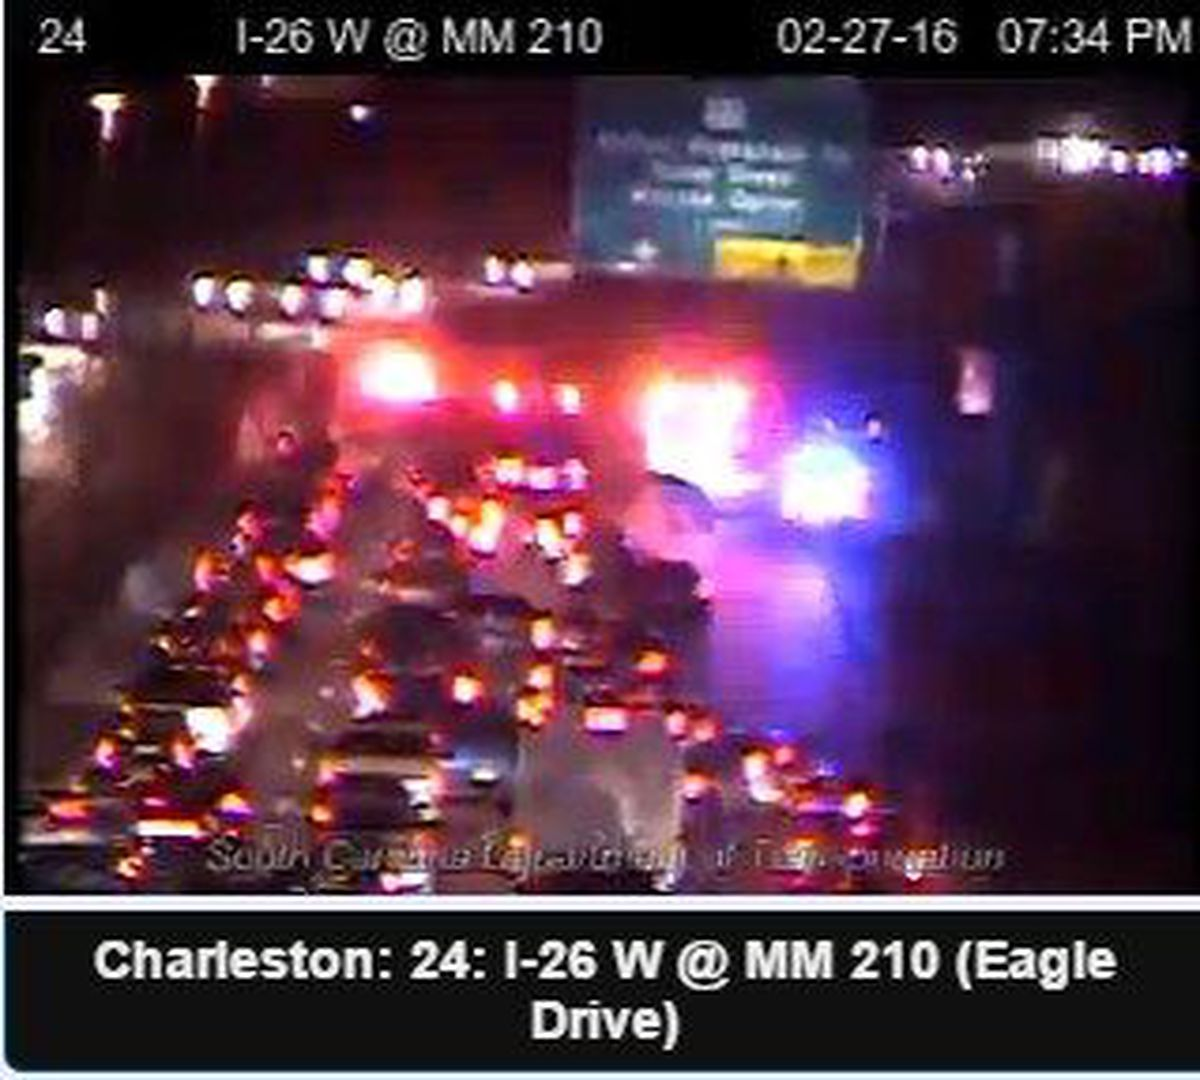 I-26 WB traffic near Ashley Phosphate back to normal after wreck